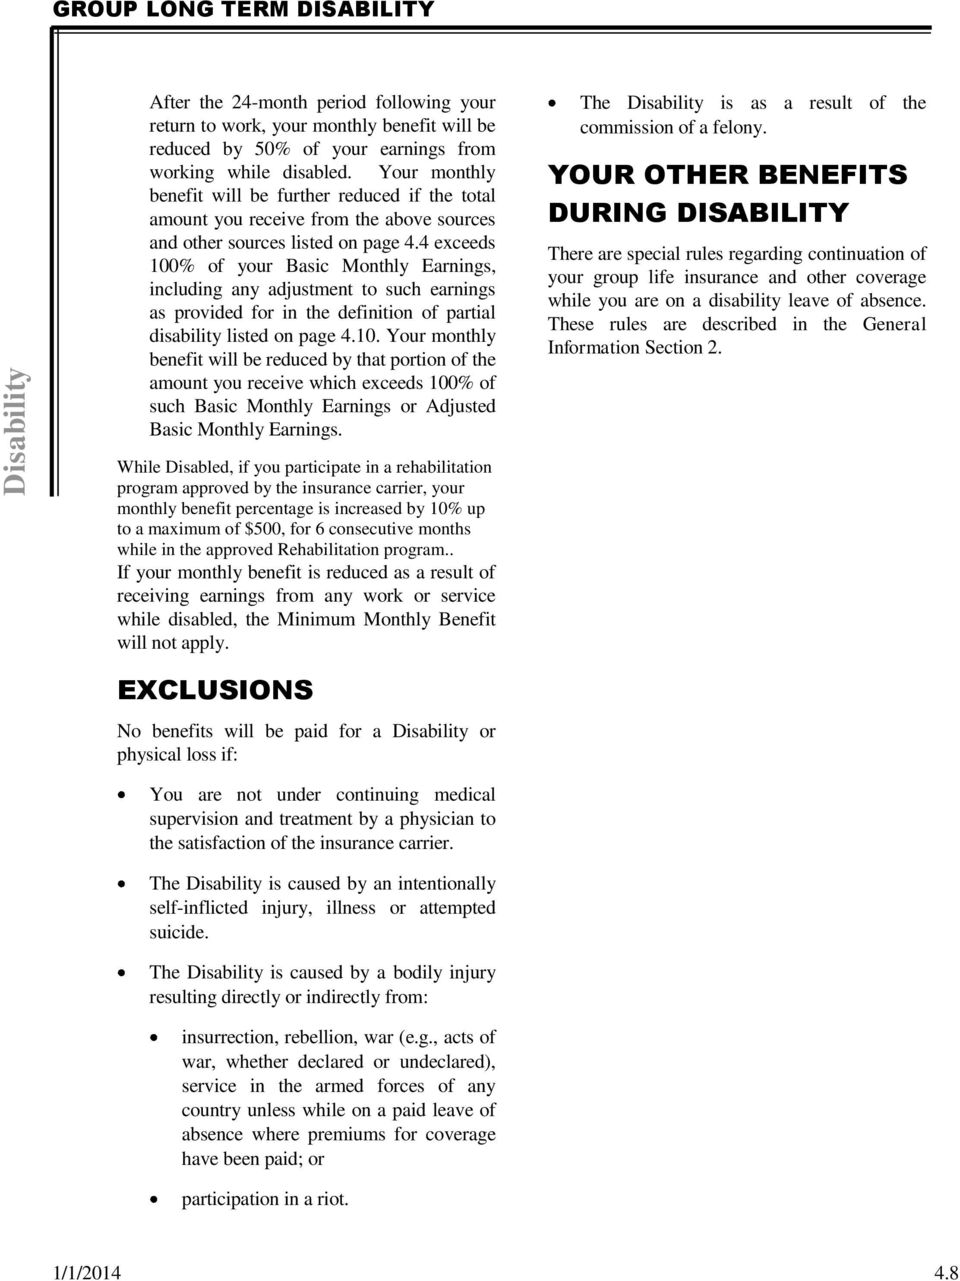 4 exceeds 100% of your Basic Monthly Earnings, including any adjustment to such earnings as provided for in the definition of partial disability listed on page 4.10. Your monthly benefit will be reduced by that portion of the amount you receive which exceeds 100% of such Basic Monthly Earnings or Adjusted Basic Monthly Earnings.